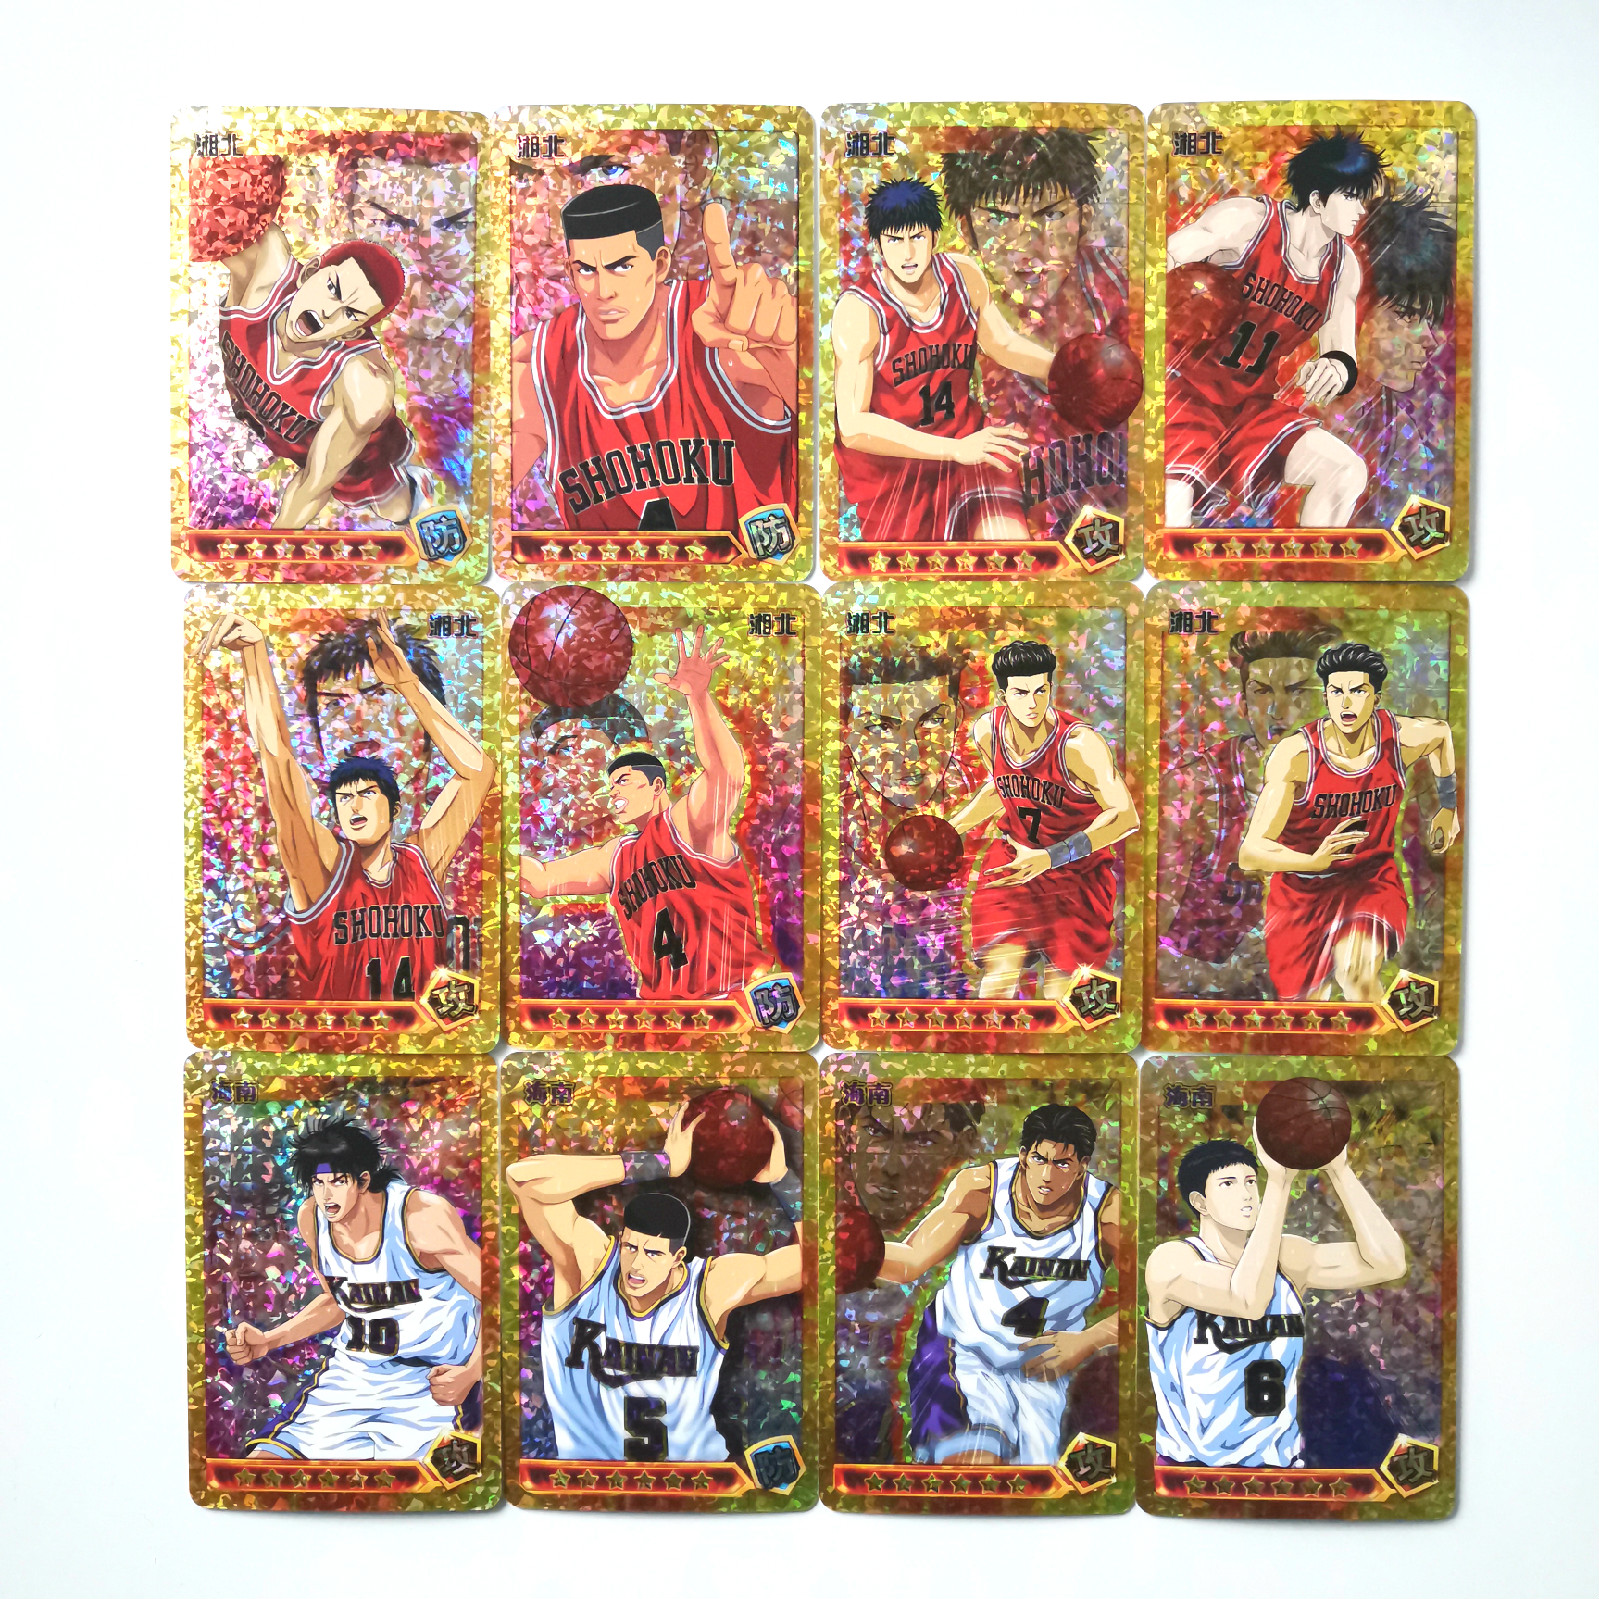 21pcs/set SLAM DUNK Third Bomb Toys Hobbies Hobby Collectibles Game Collection Anime Cards